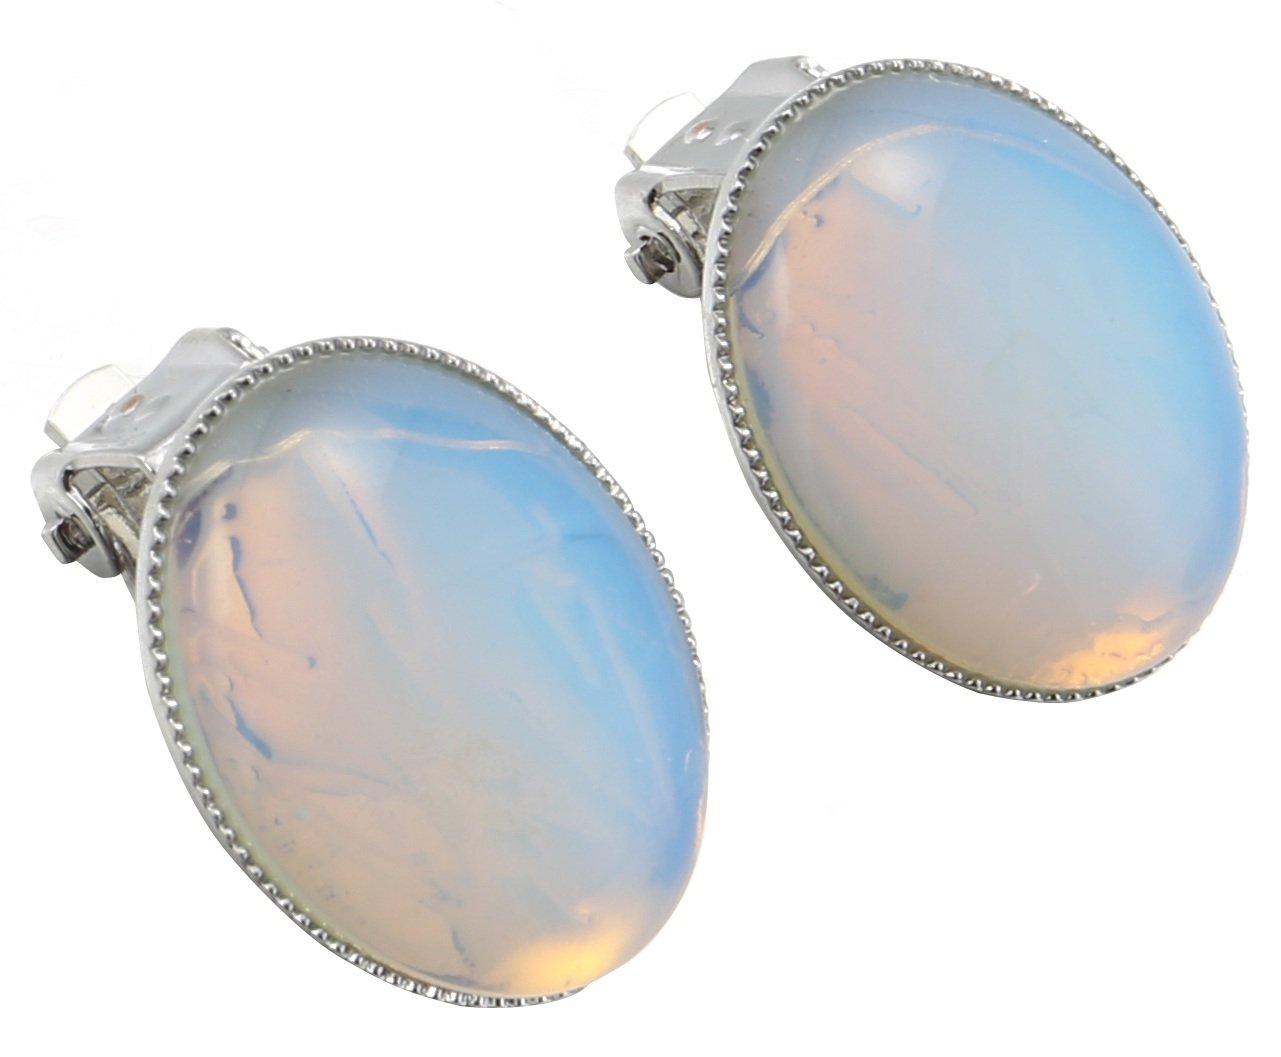 MagicYiMu Women's Jewelry Oval Simulated Opal Clip-On Earrings by MagicYiMu (Image #3)